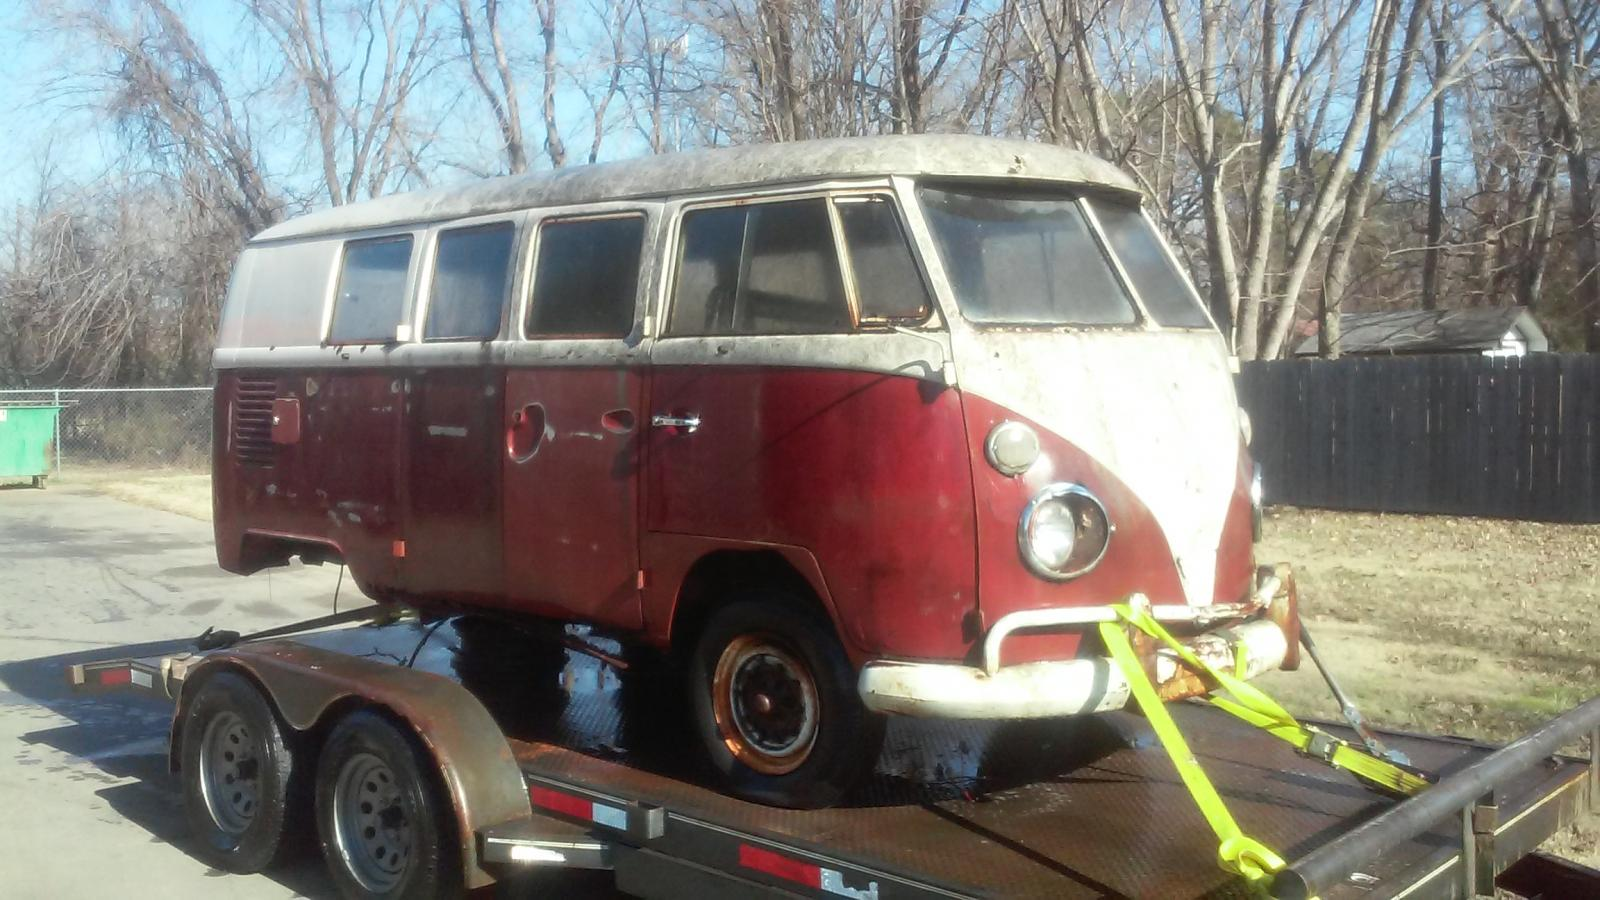 1966 titian red standard just pulled out of the trees